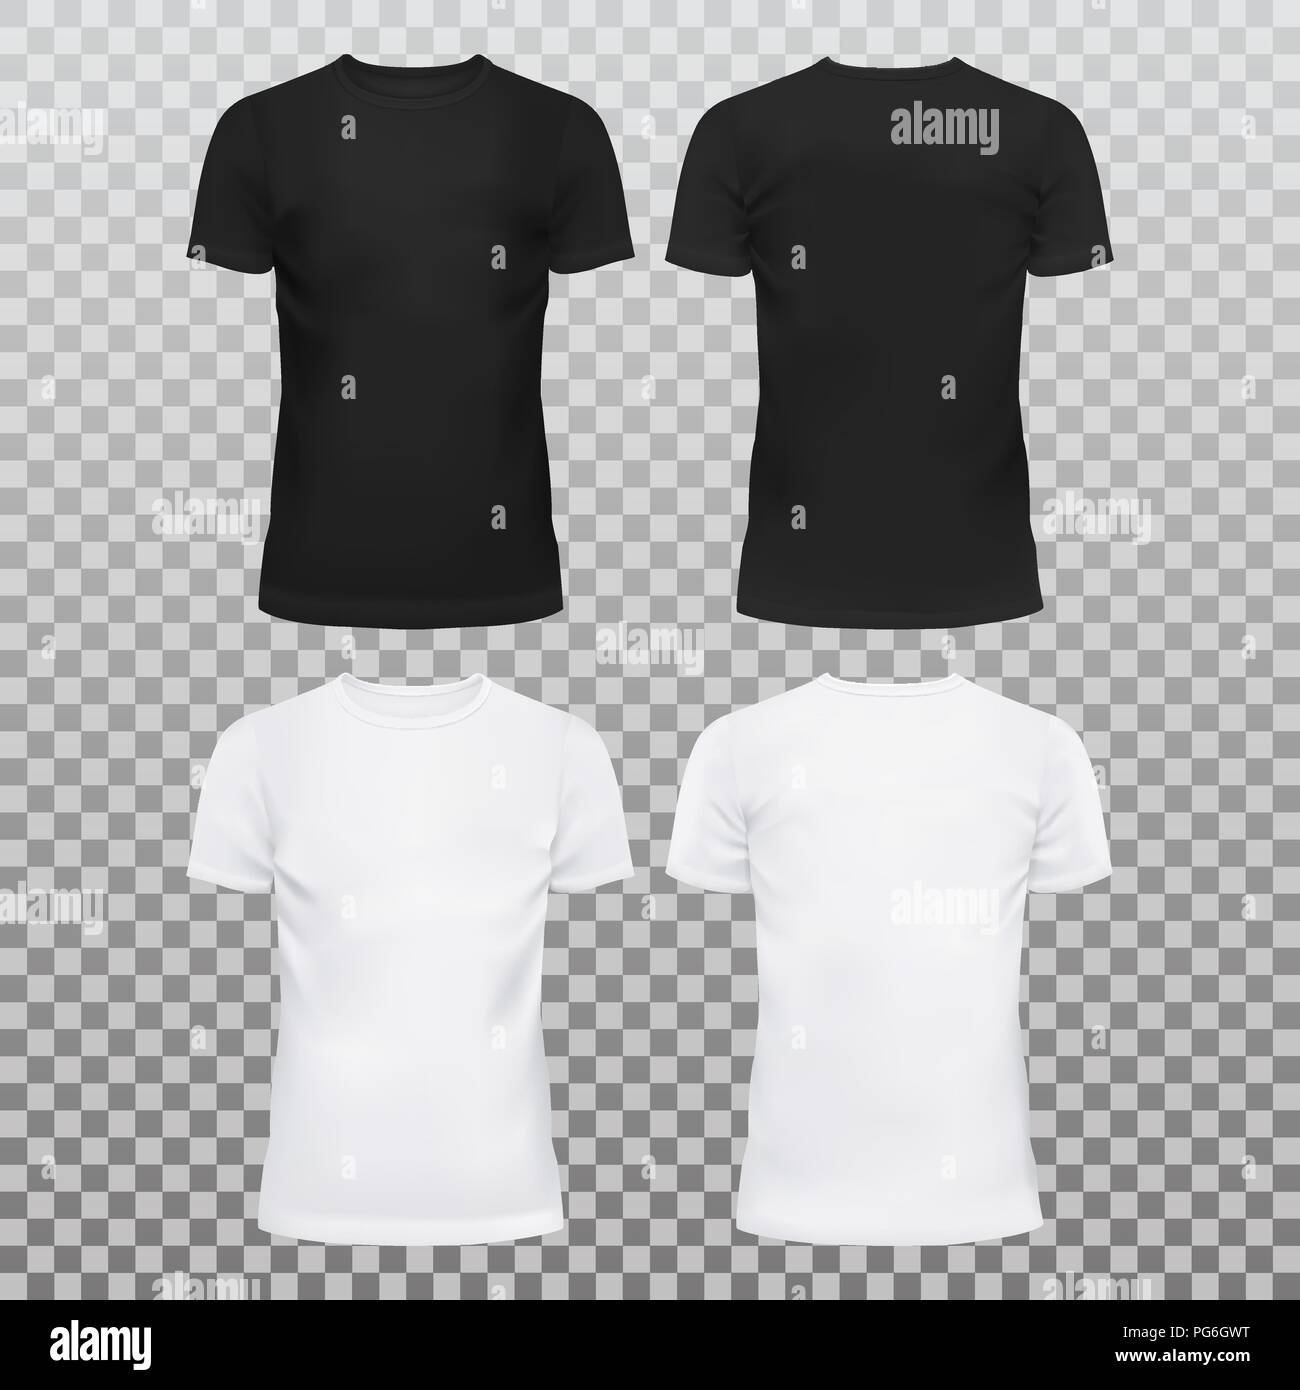 410b86a1164e84 Amazing mockup blank t-shirts for men and women. Summer clothing with  u-neck at front.